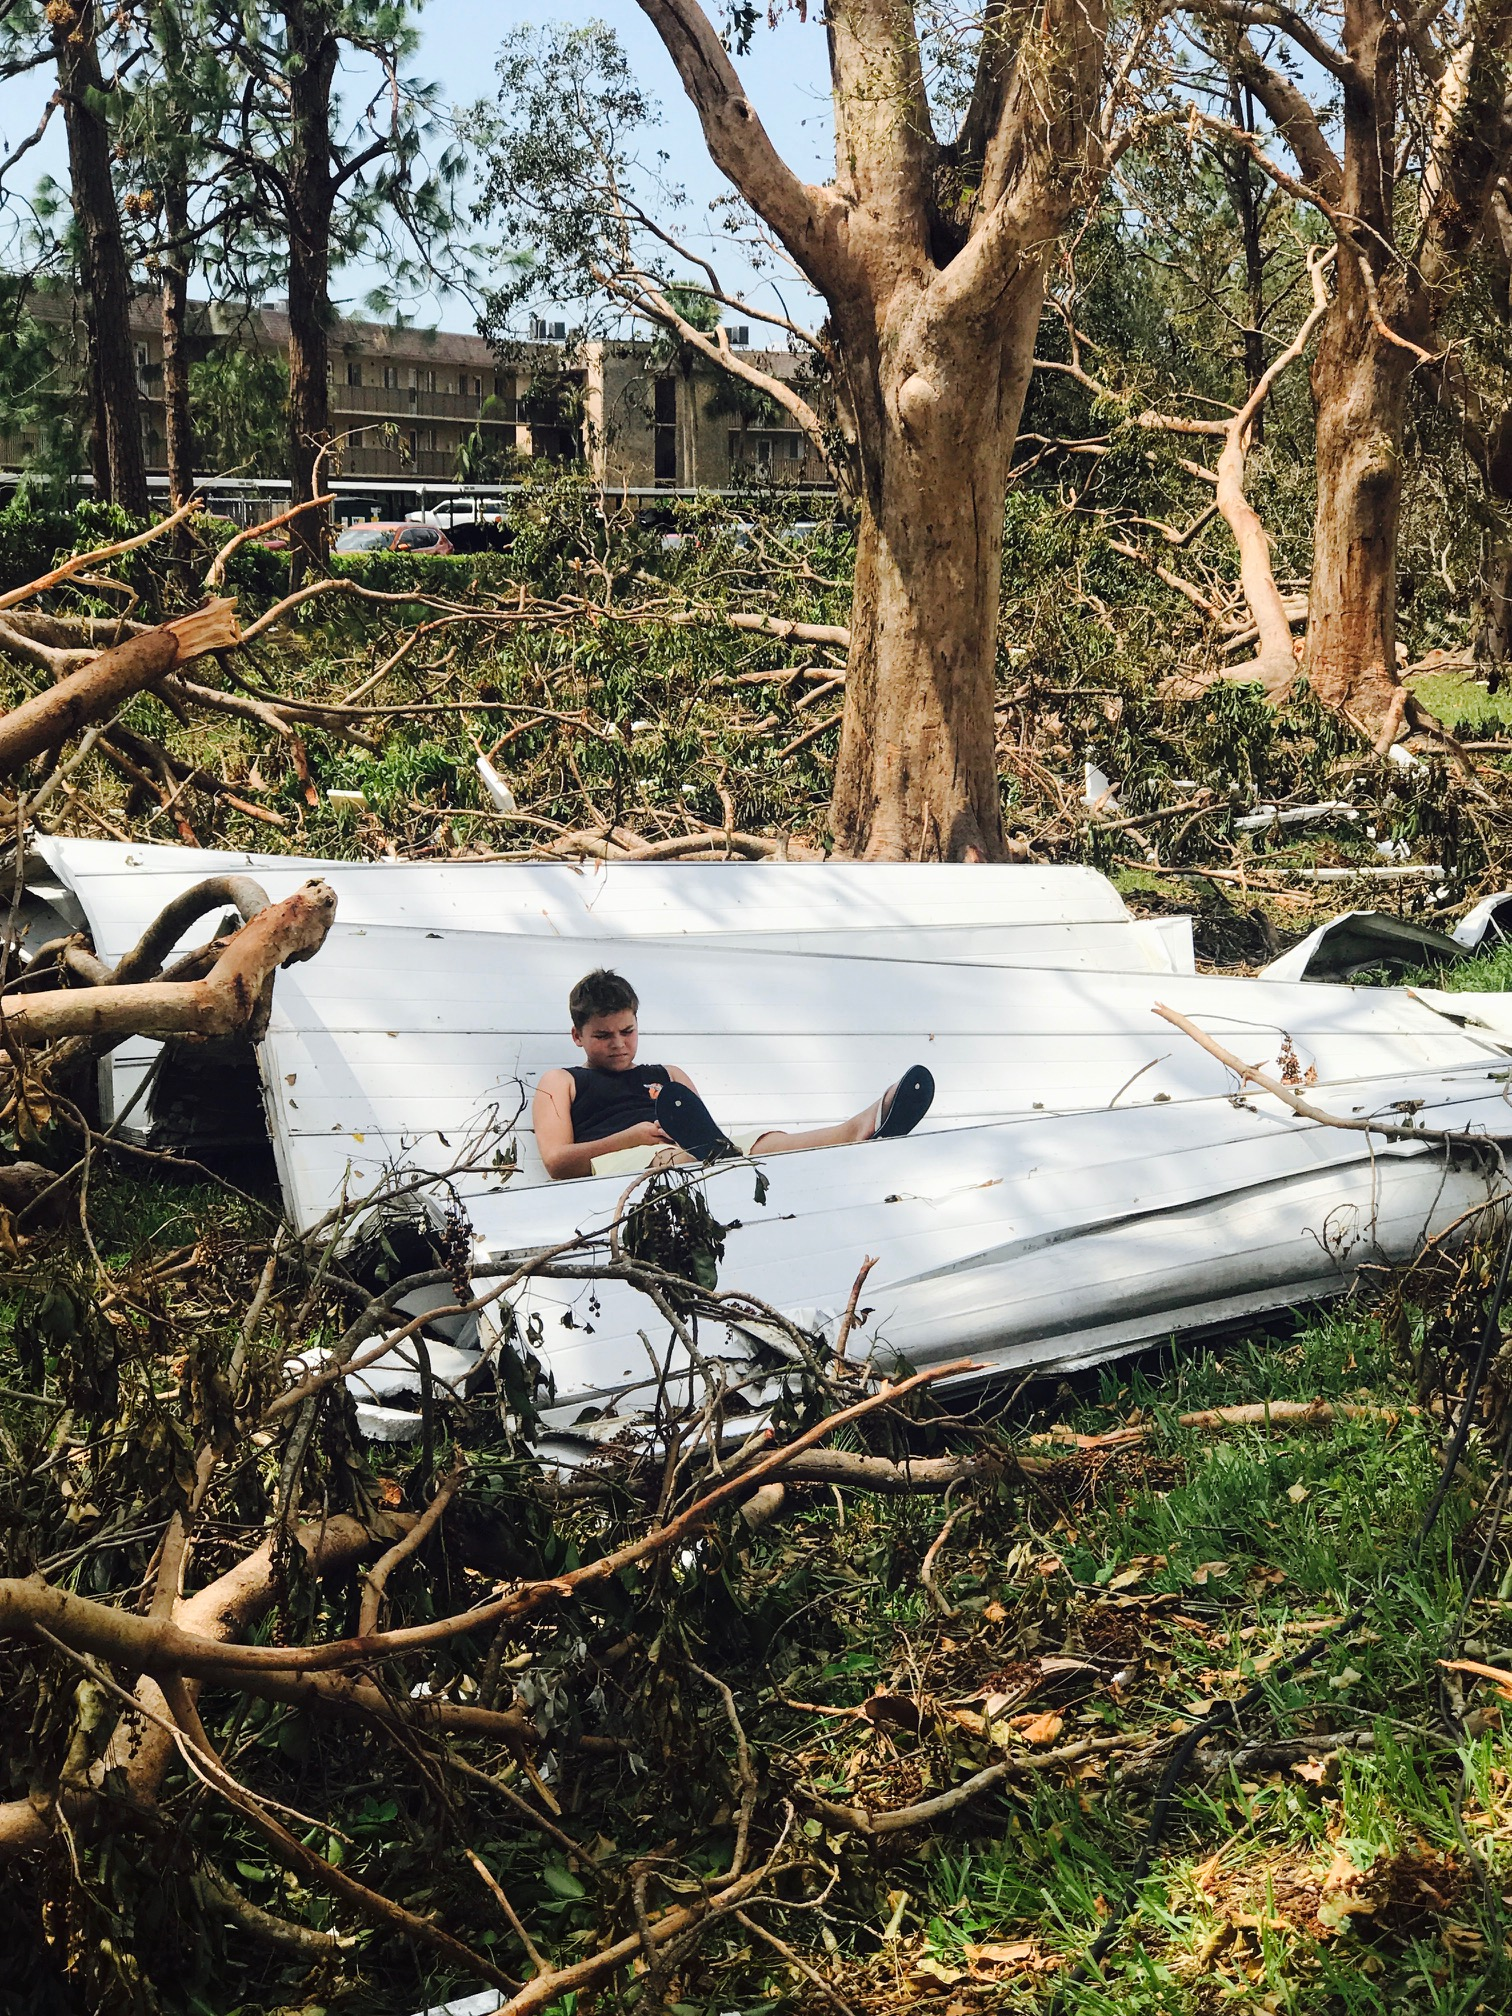 Former Cranbrook resident living in Florida shares Hurricane Irma experience